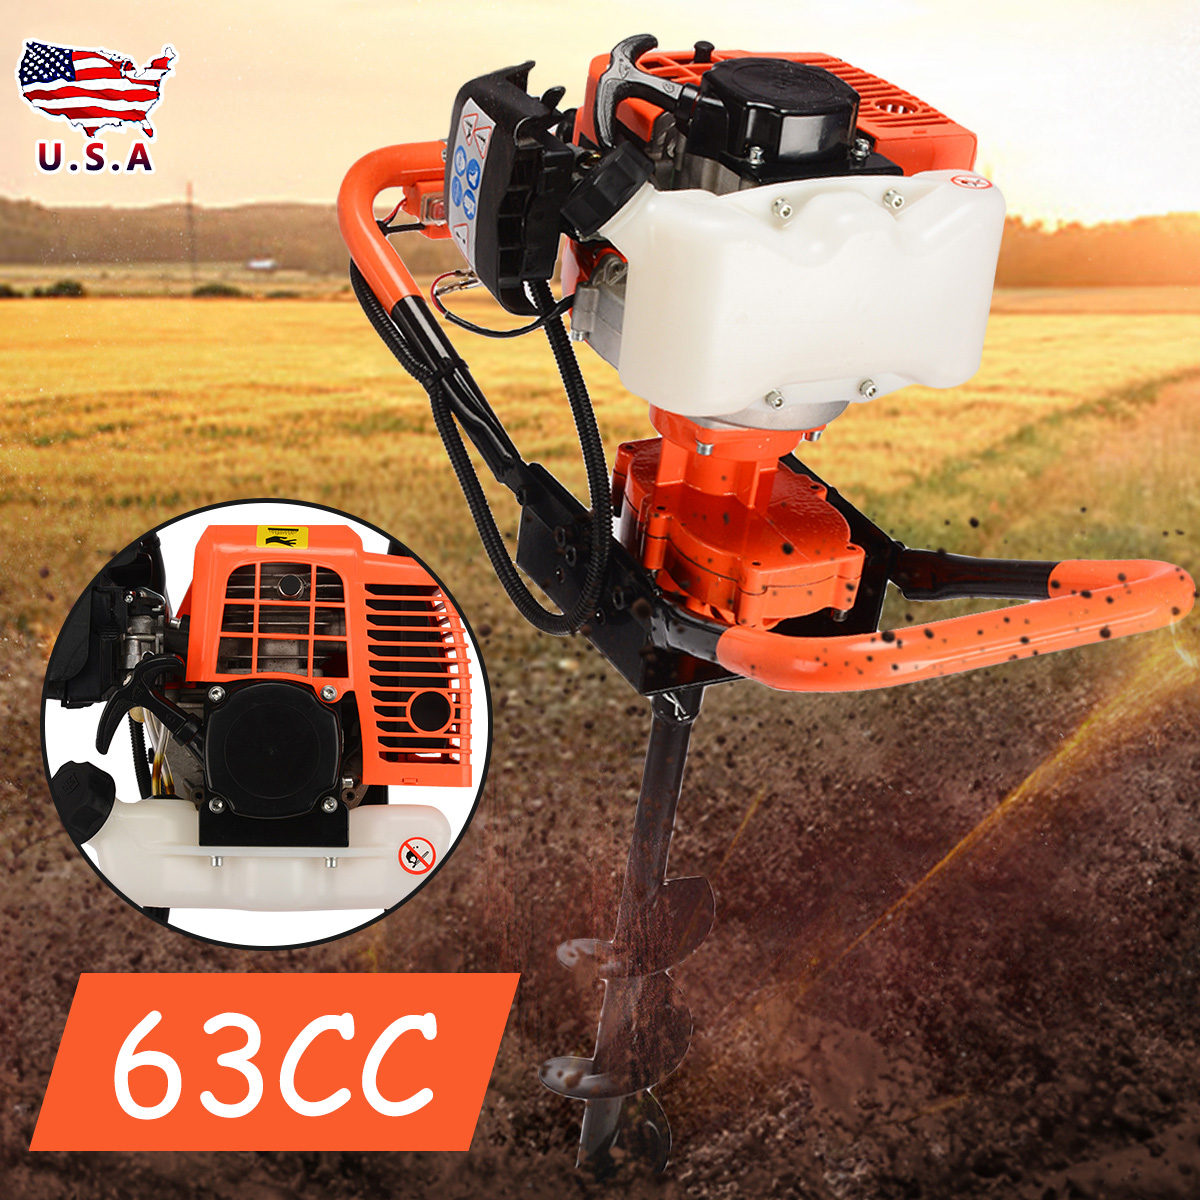 63cc Petrol Post Hole Digger Tool+ Earth Auger Drill Bit For Garden Farm Ground Drill Machine Power Tools Accessories